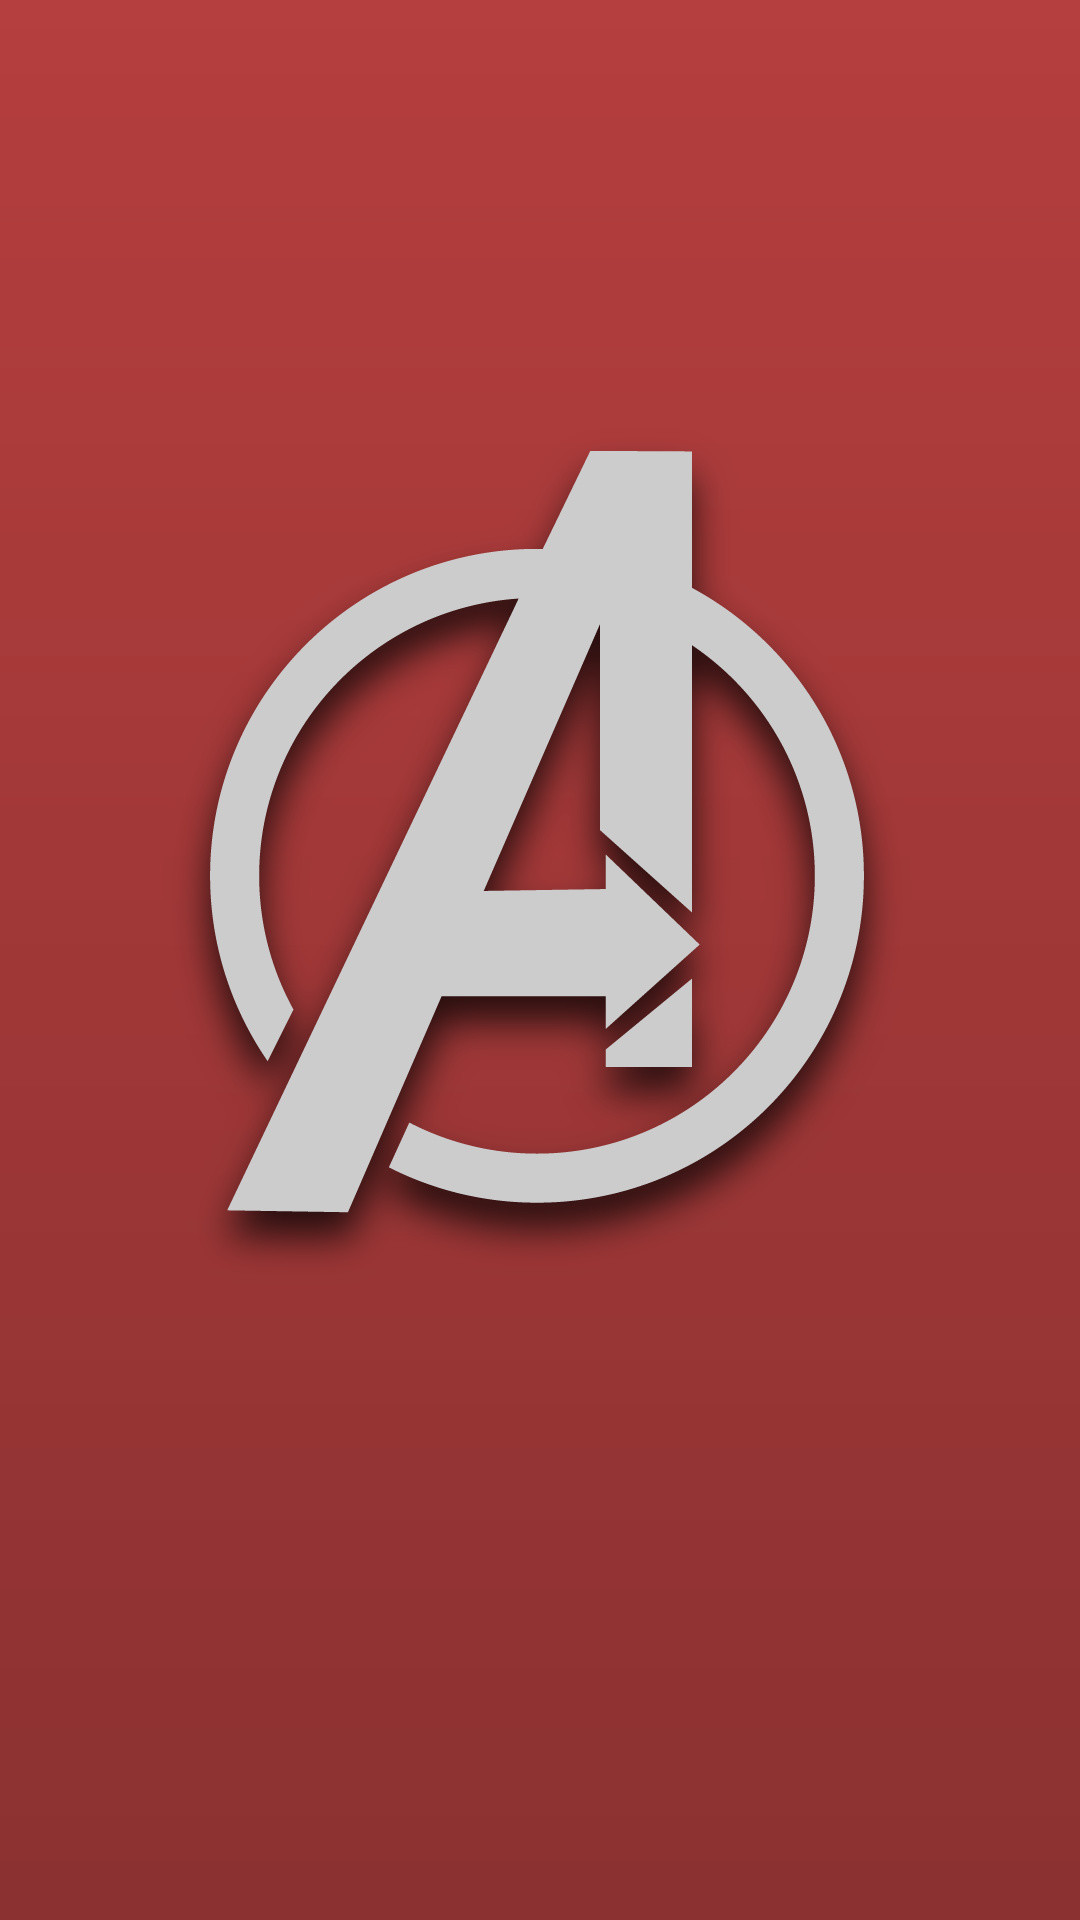 Good Wallpaper Marvel Ios - 493441-popular-avengers-logo-wallpaper-1080x1920-for-ios  HD_25485.jpg